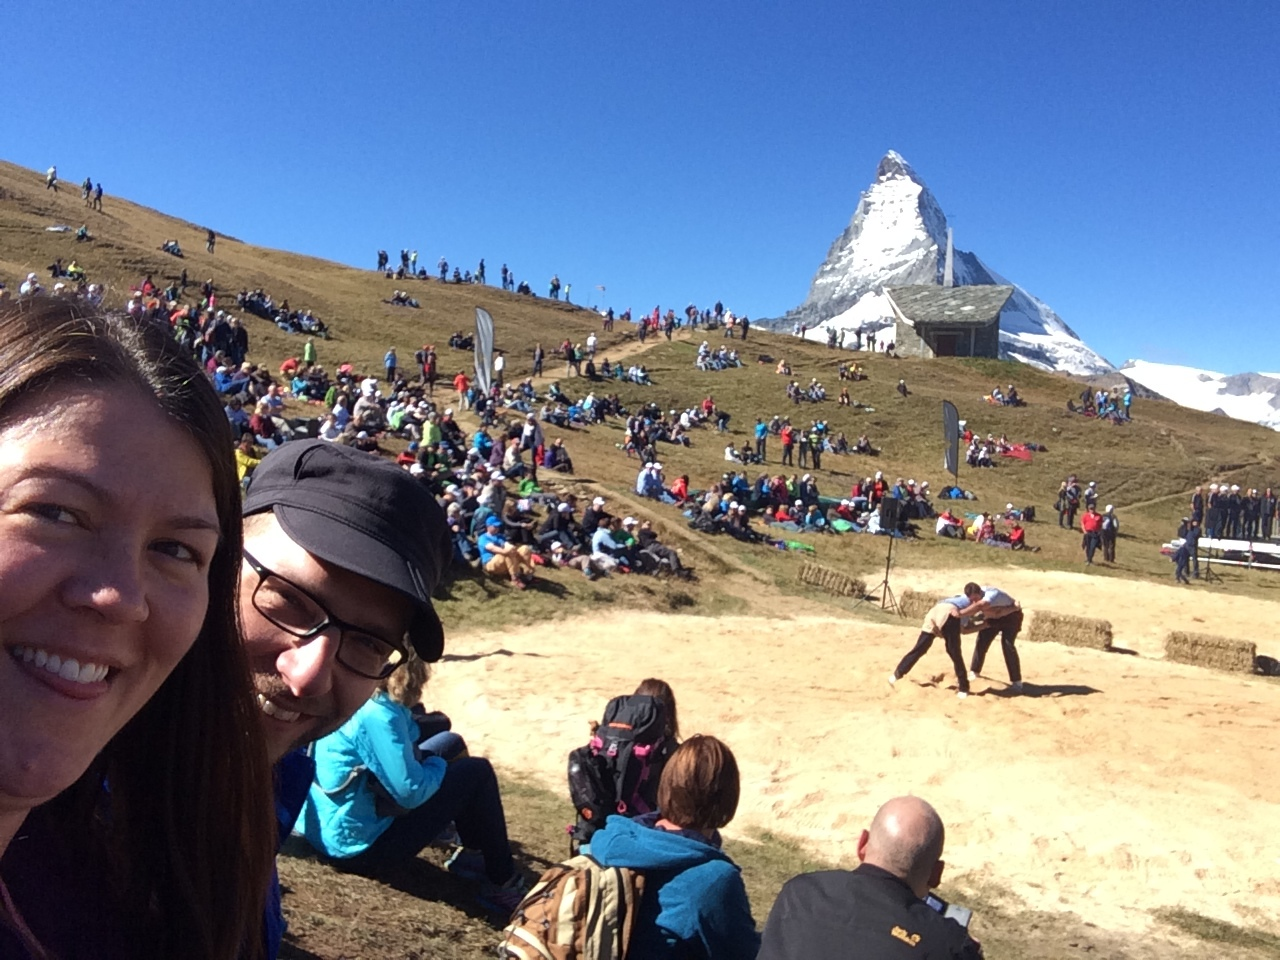 There is a lot going on in this picture. First, it's a picture of the Matterhorn. Second, it's a picture of a traditional Swiss pass-time, Schwingen. Lastly, it's a picture of people, primarily Swss, watching Swiss Schwingen..